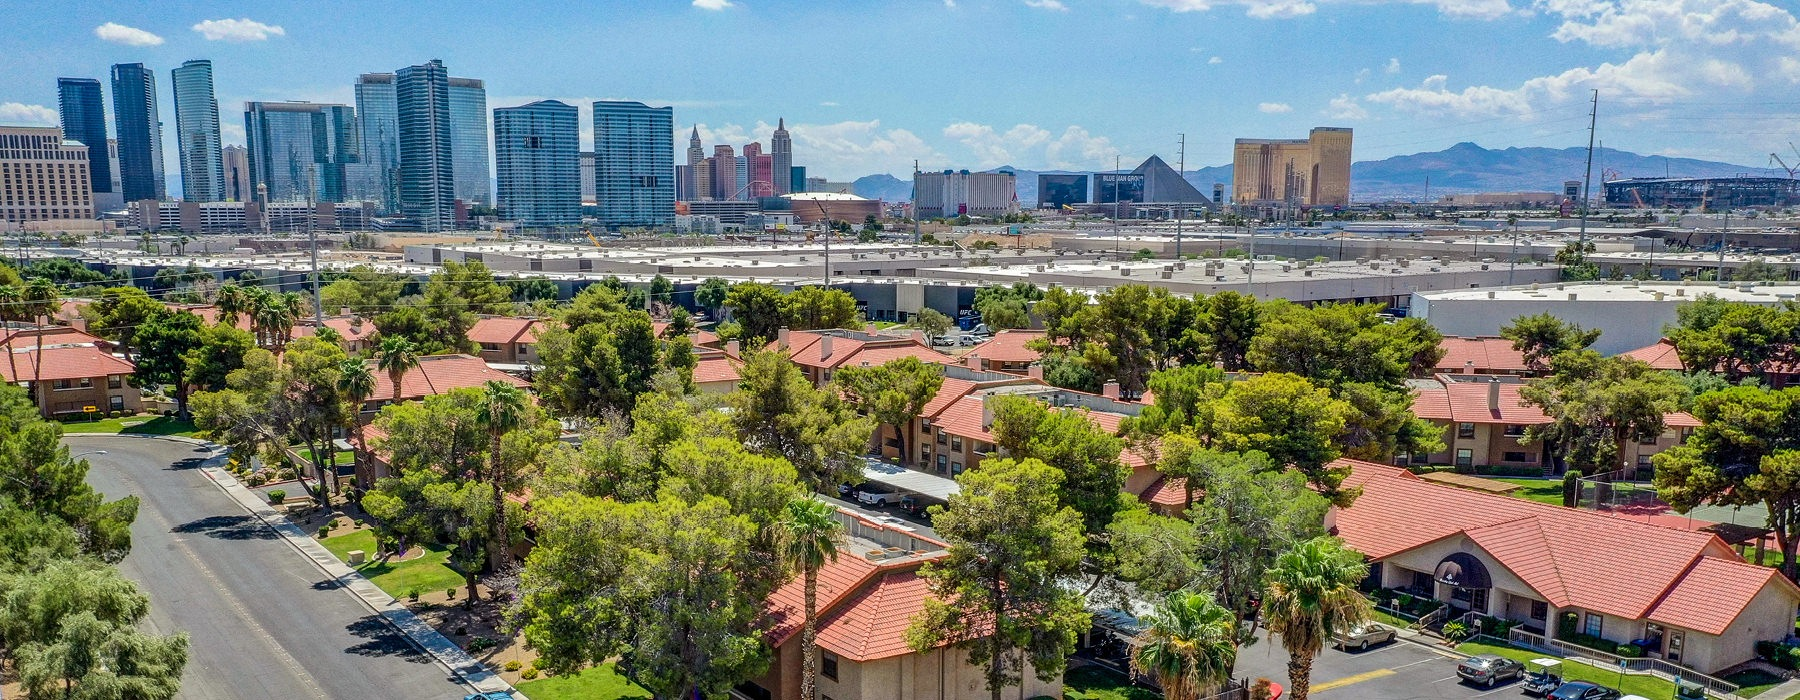 arial view of Rancho Del Sol and the Las Vegas skyline